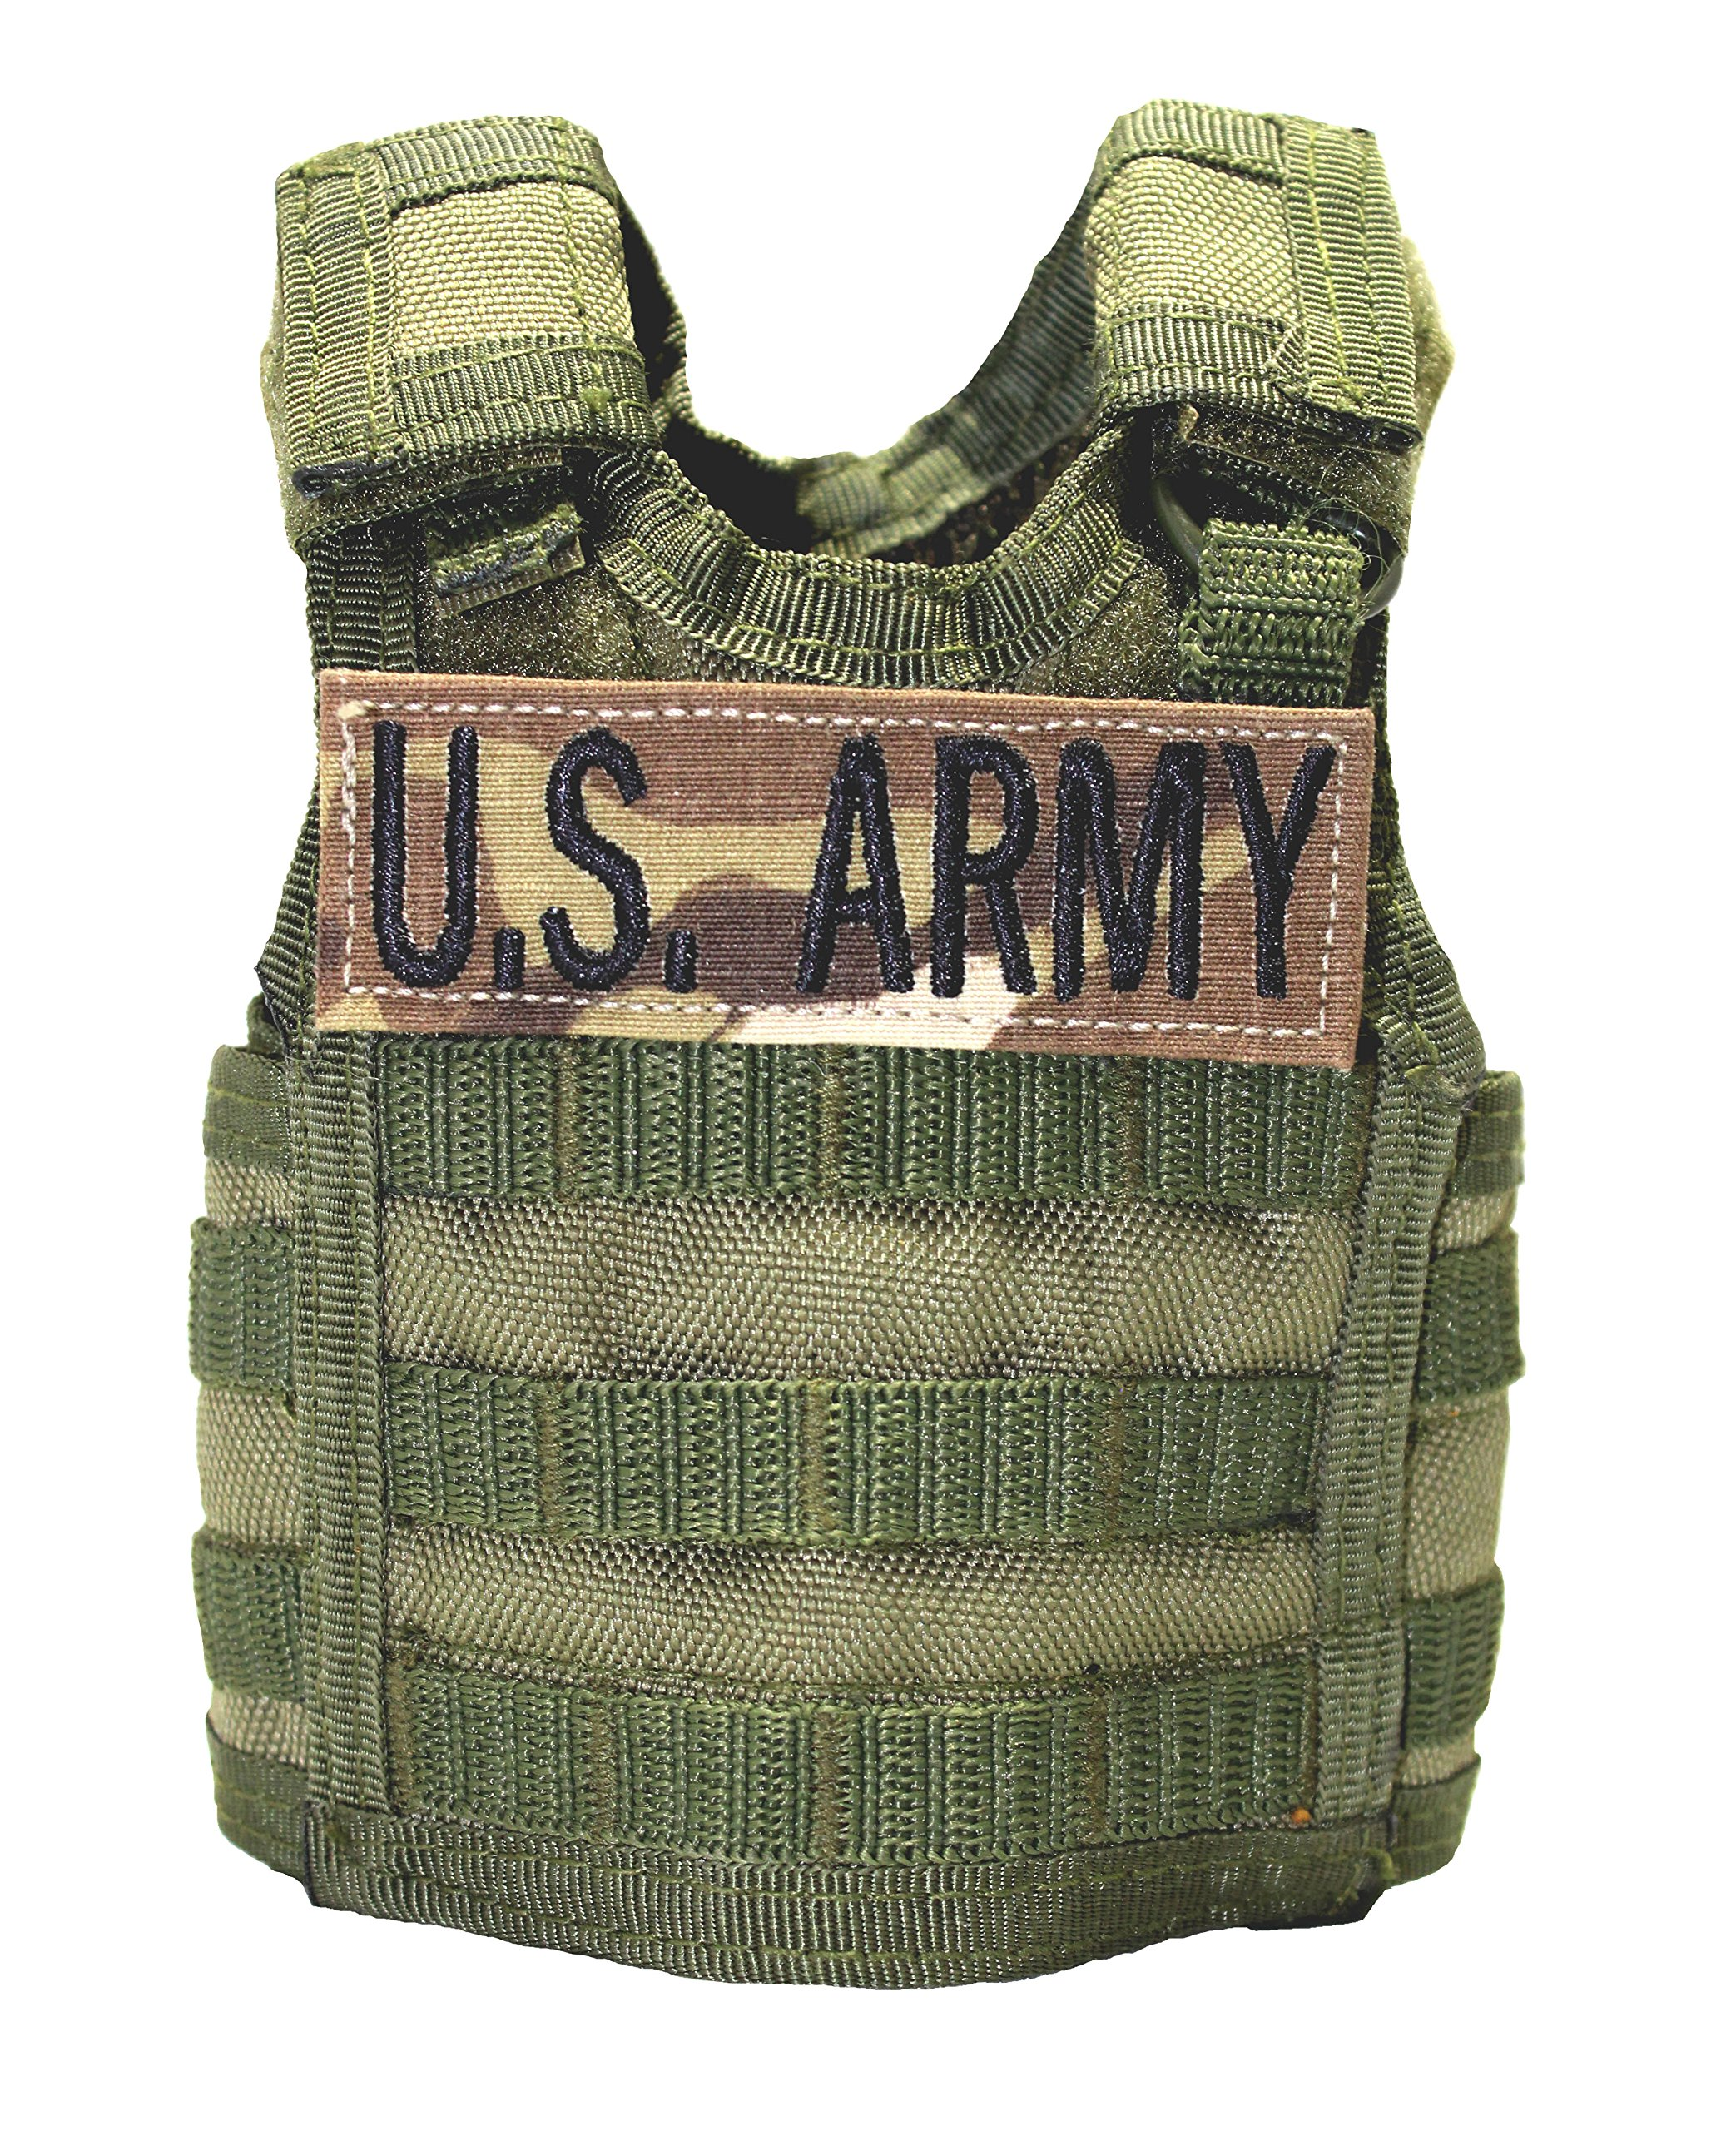 Olive Drab Tactical Deluxe Bottle Can Coolers with a personalized embroidered name tape, Mulitcam, U.S. Army